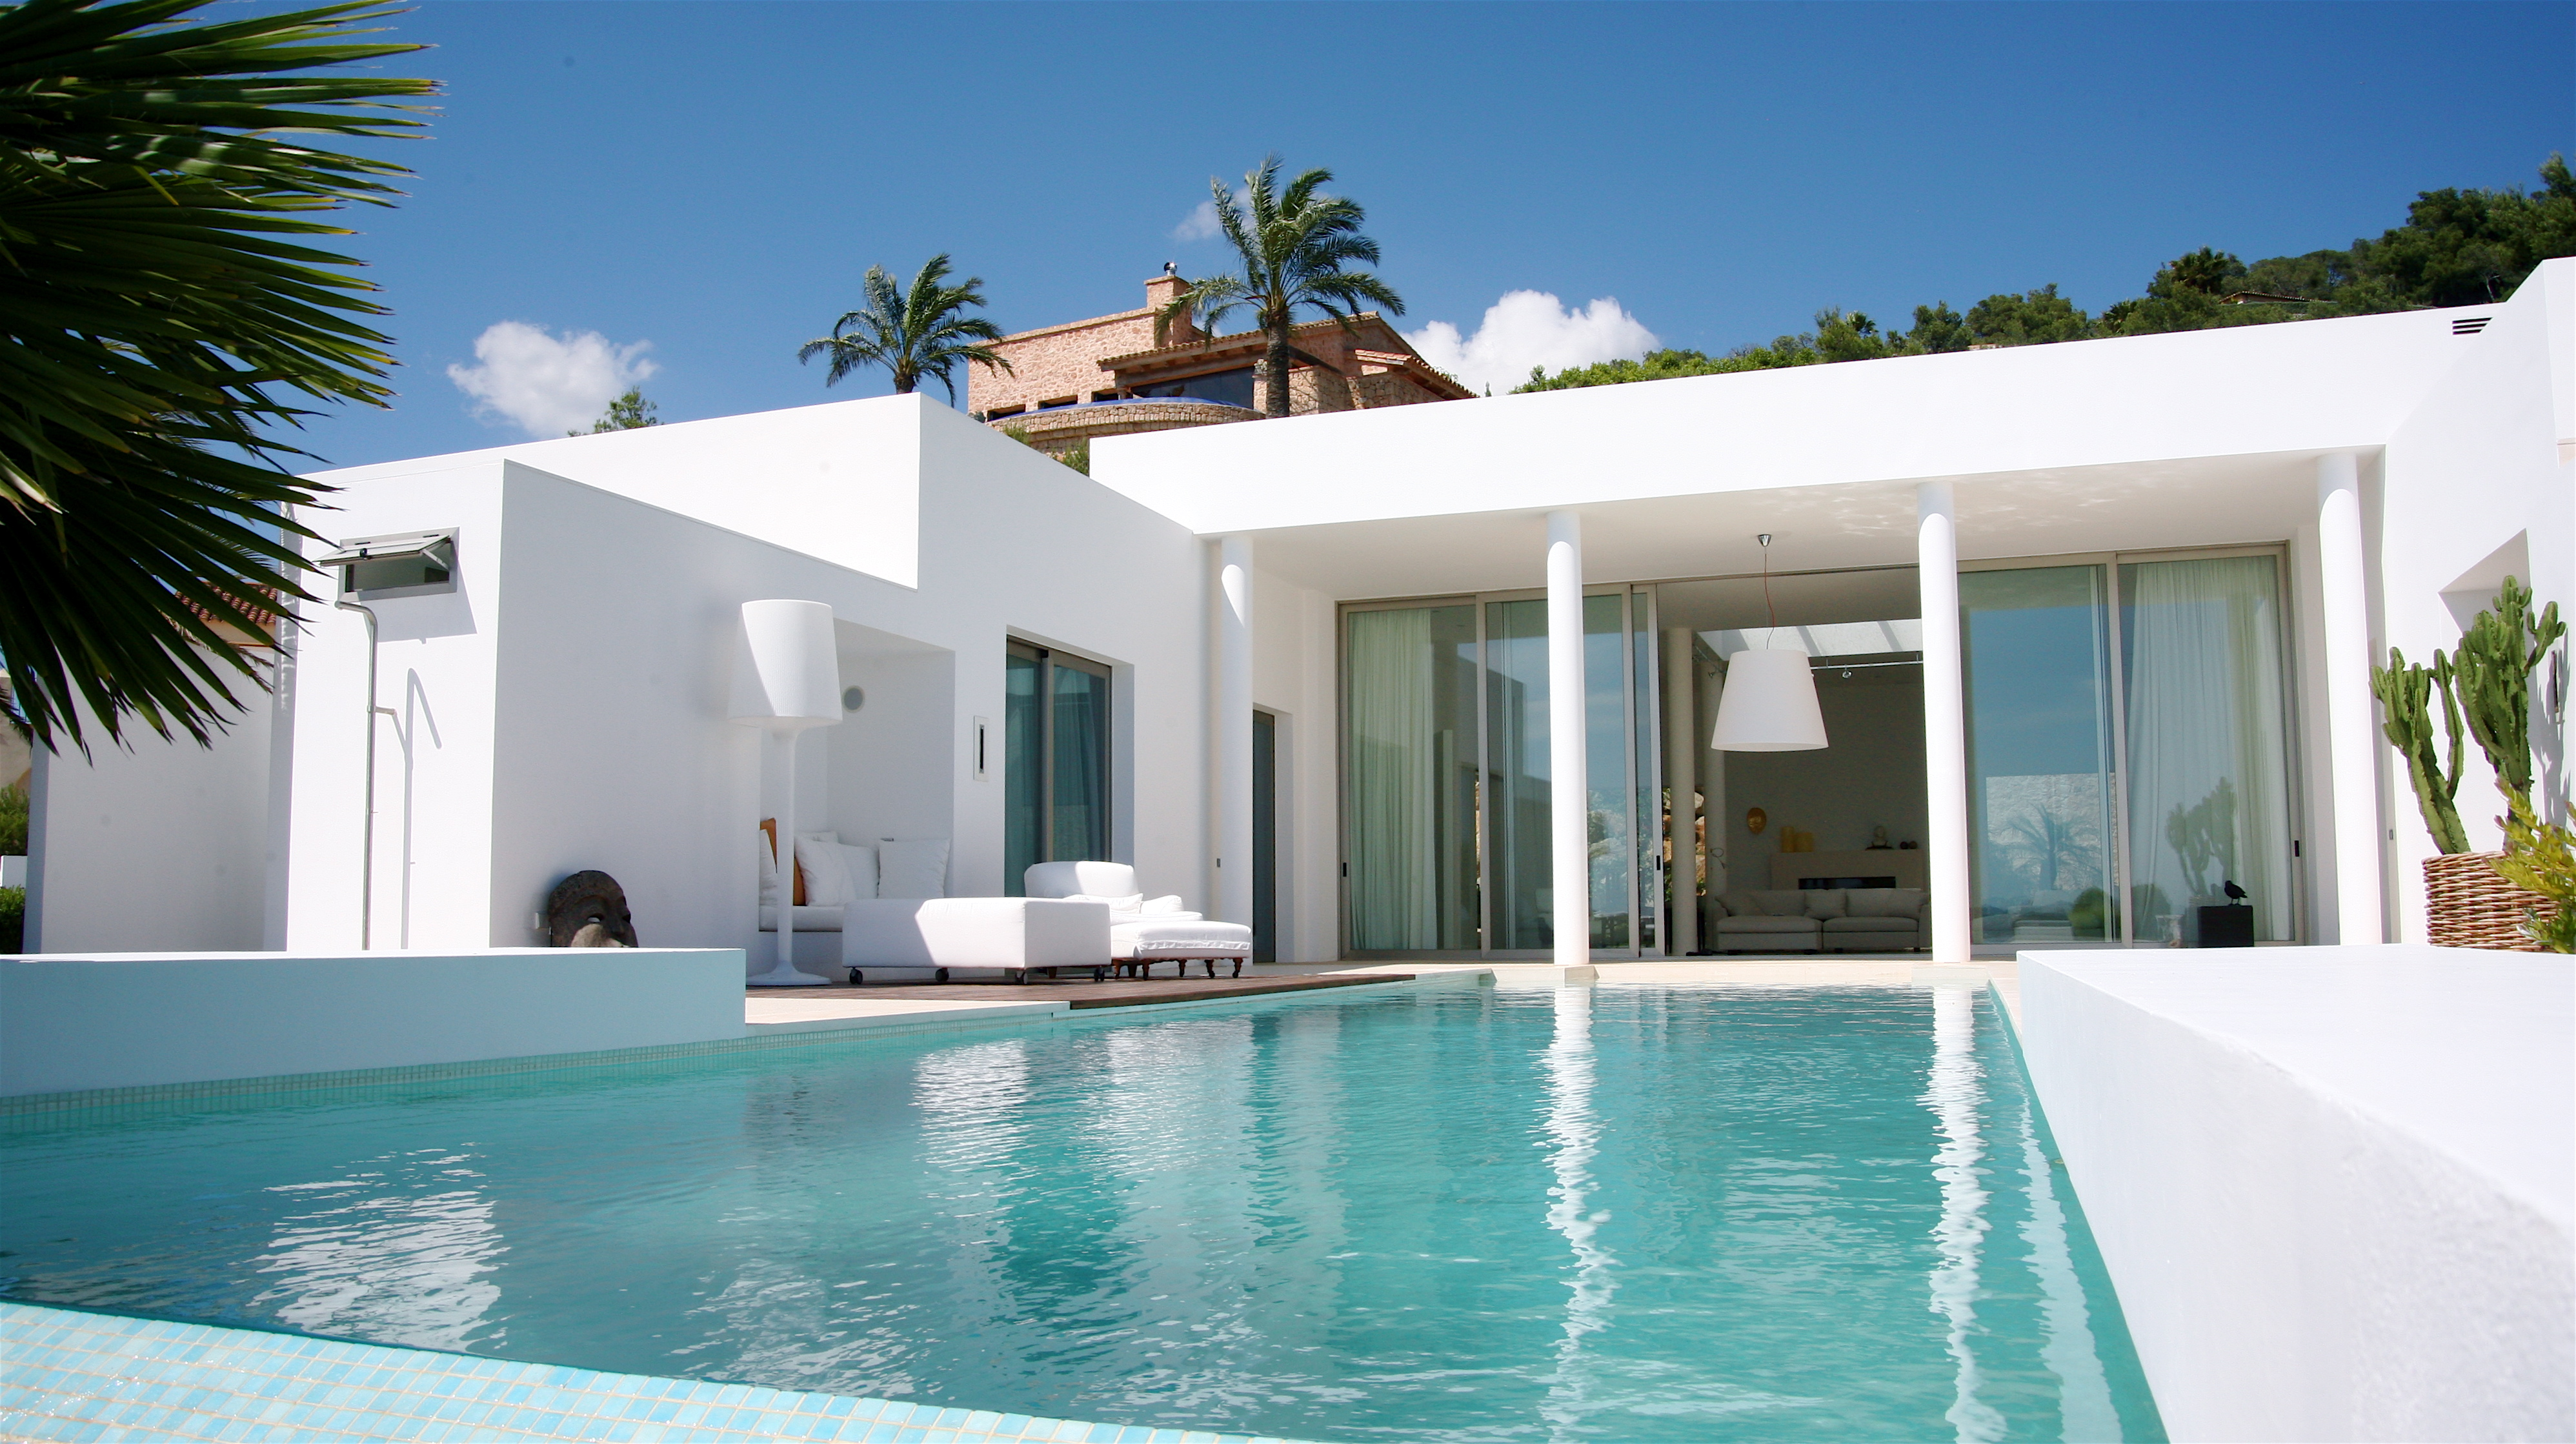 Ibiza Luxury House For Sale Overlooking Dalt Vila, Formentera And Ibiza  Town With Sea Views